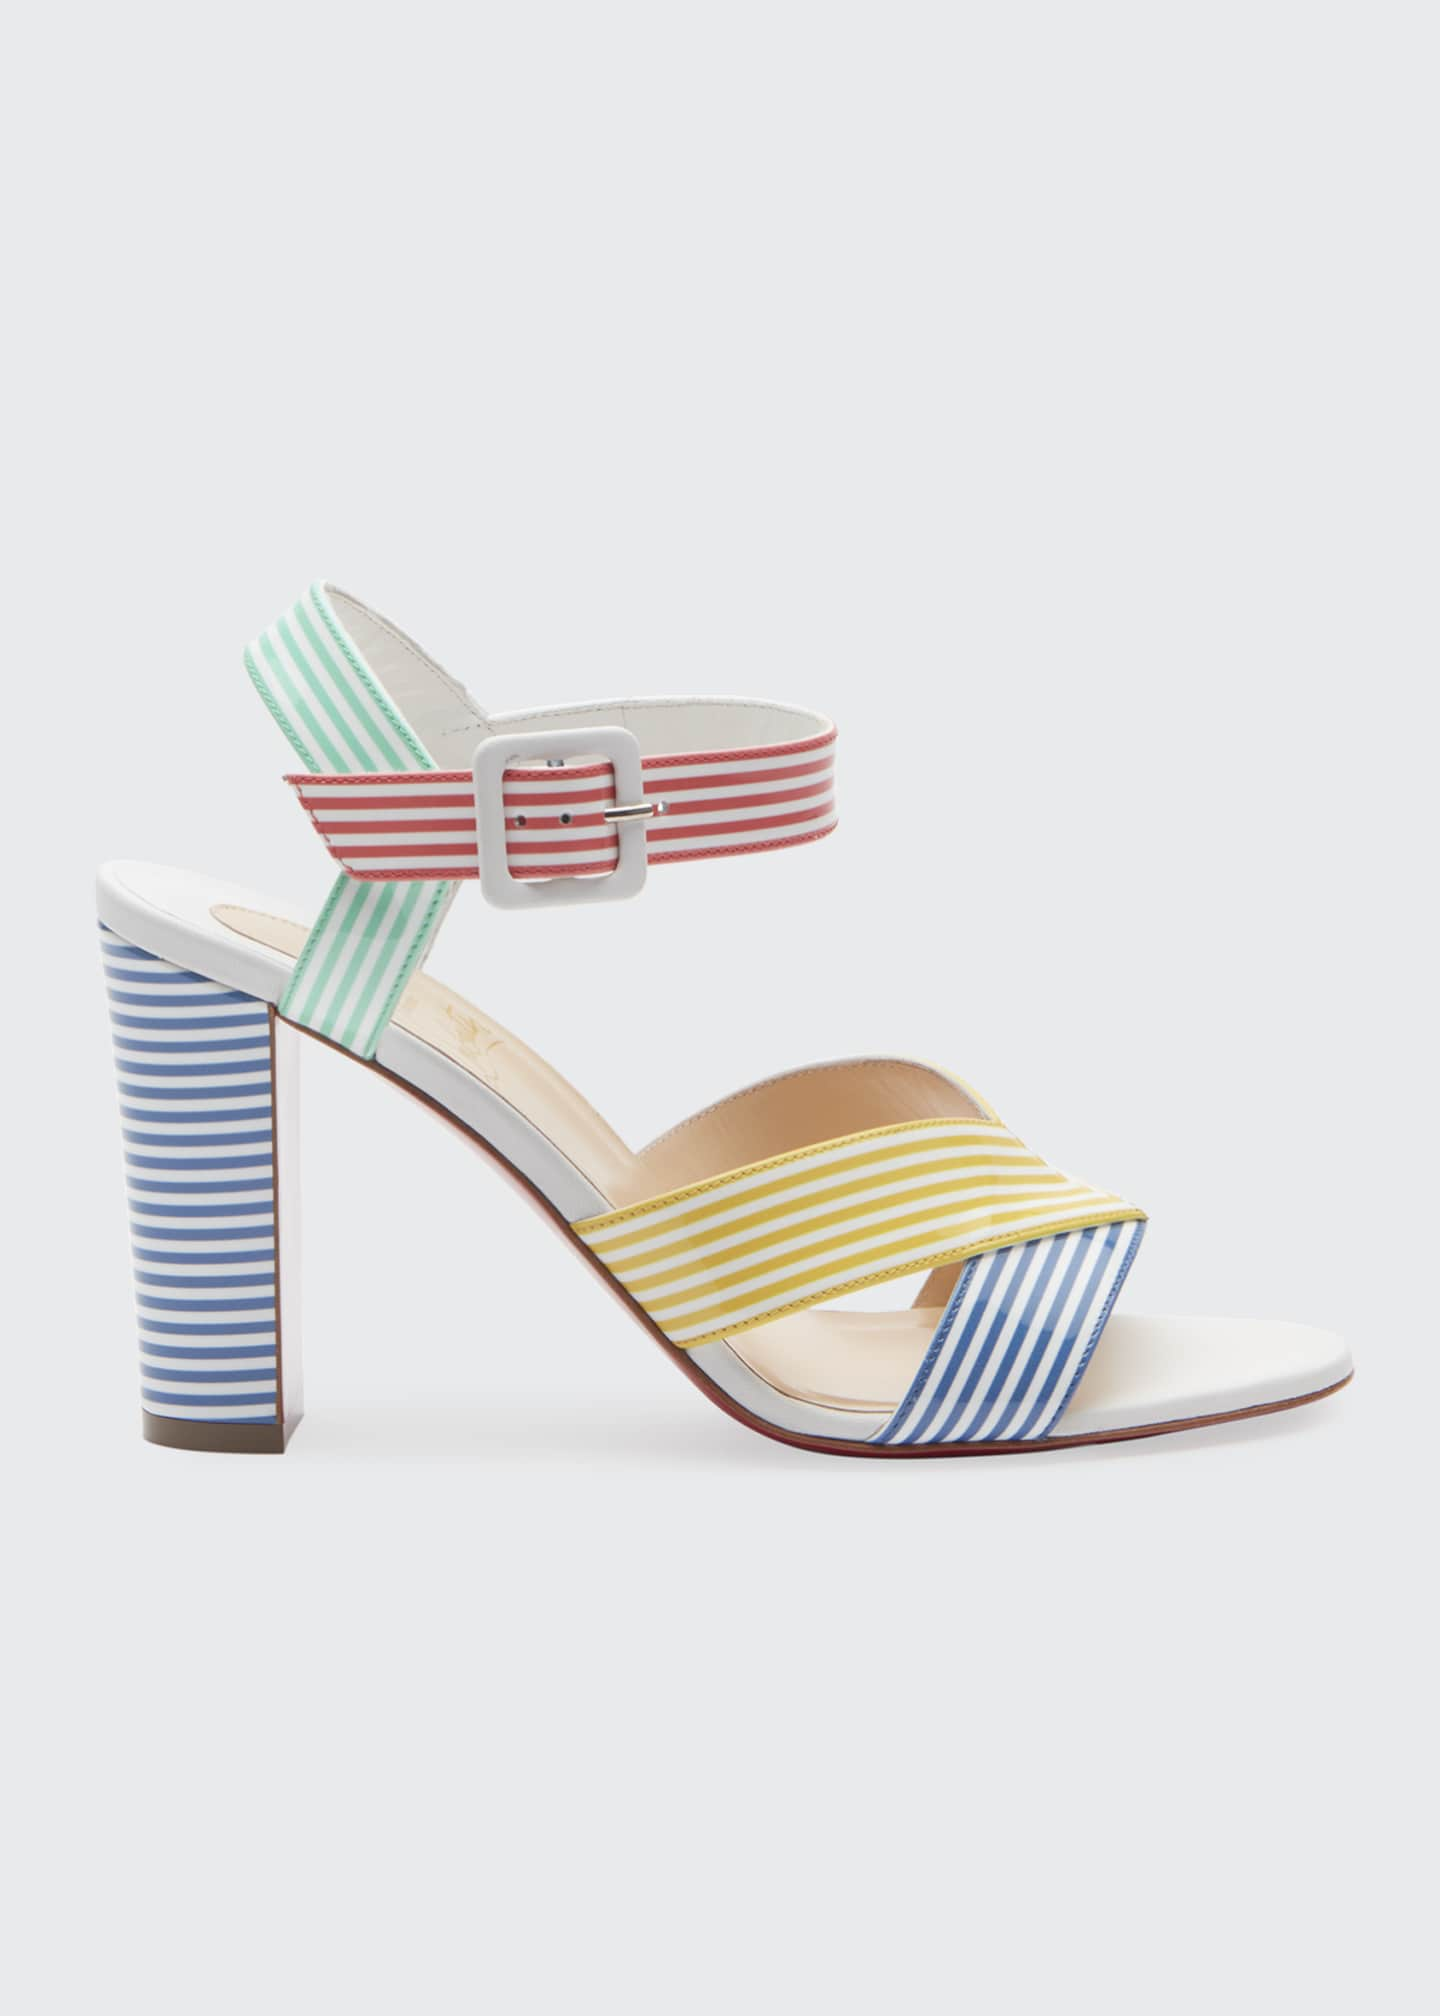 Image 1 of 2: Palavas Multicolored Striped 85mm Red Sole Sandals